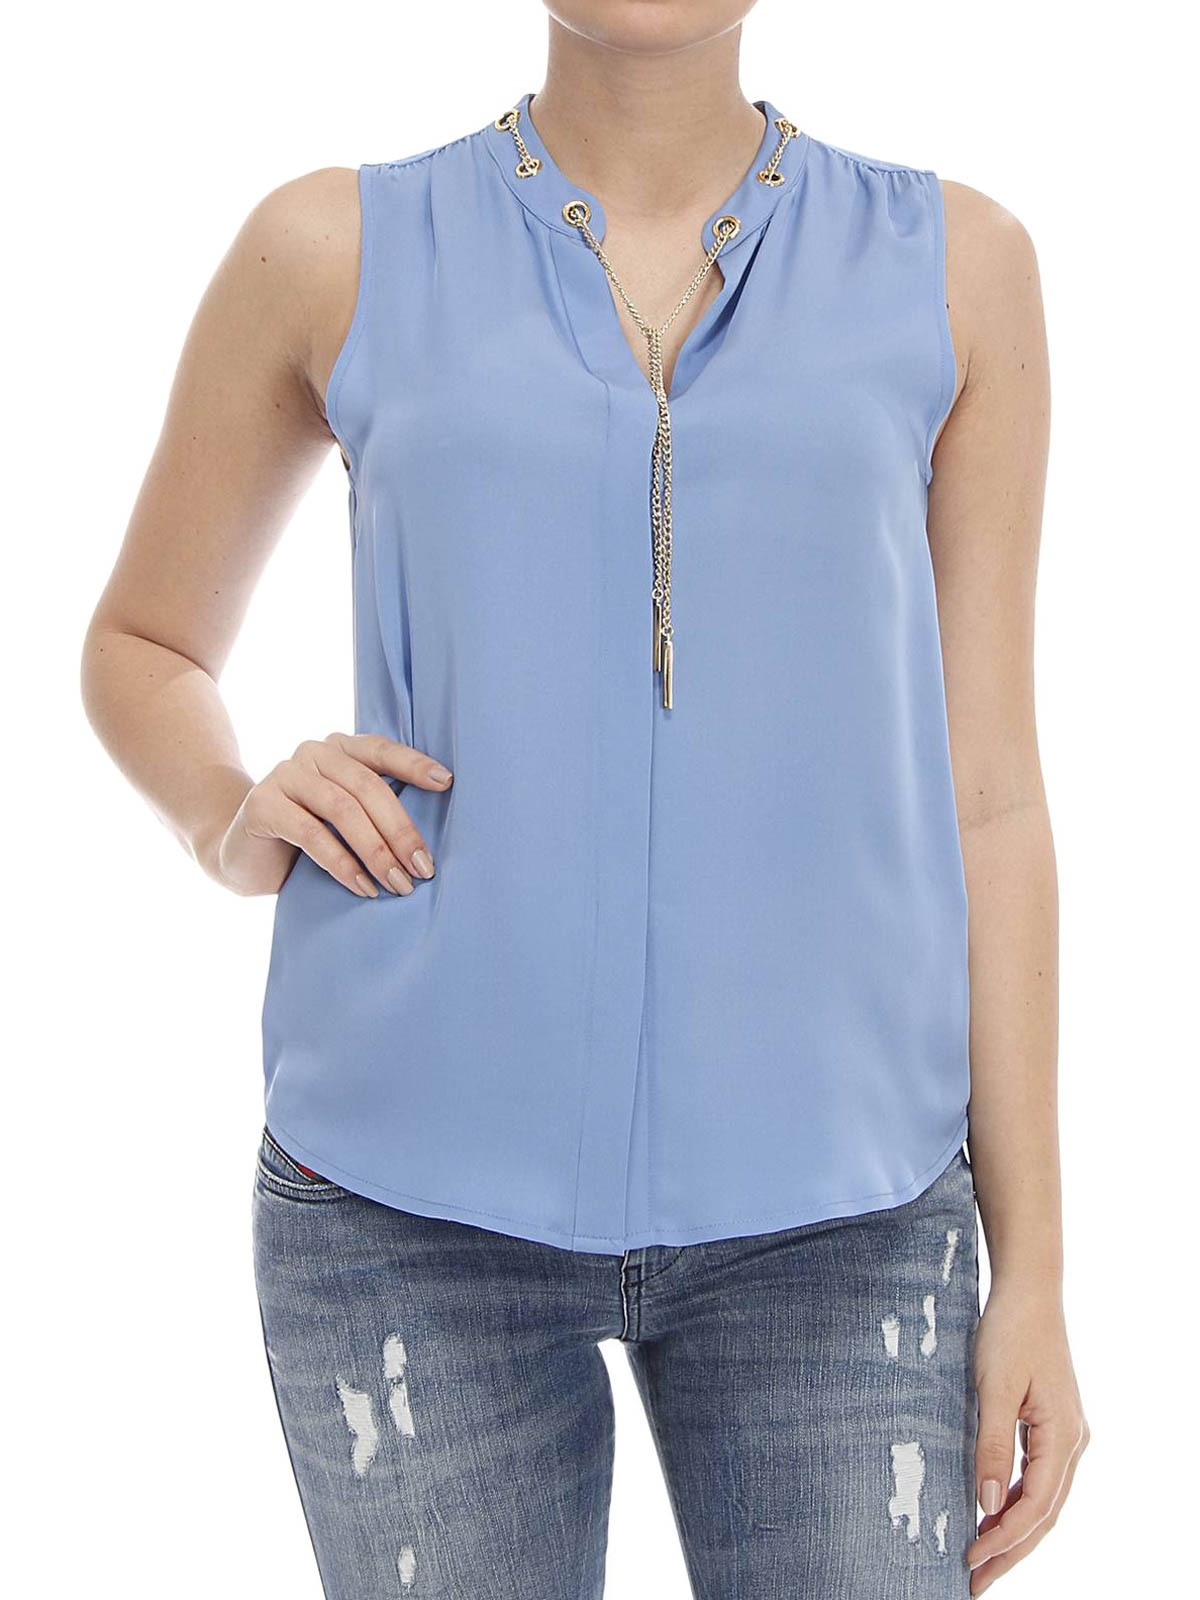 8c3a9a380a0f4 Michael Michael Kors  Tops   Tank tops online - Silk top with chain detail